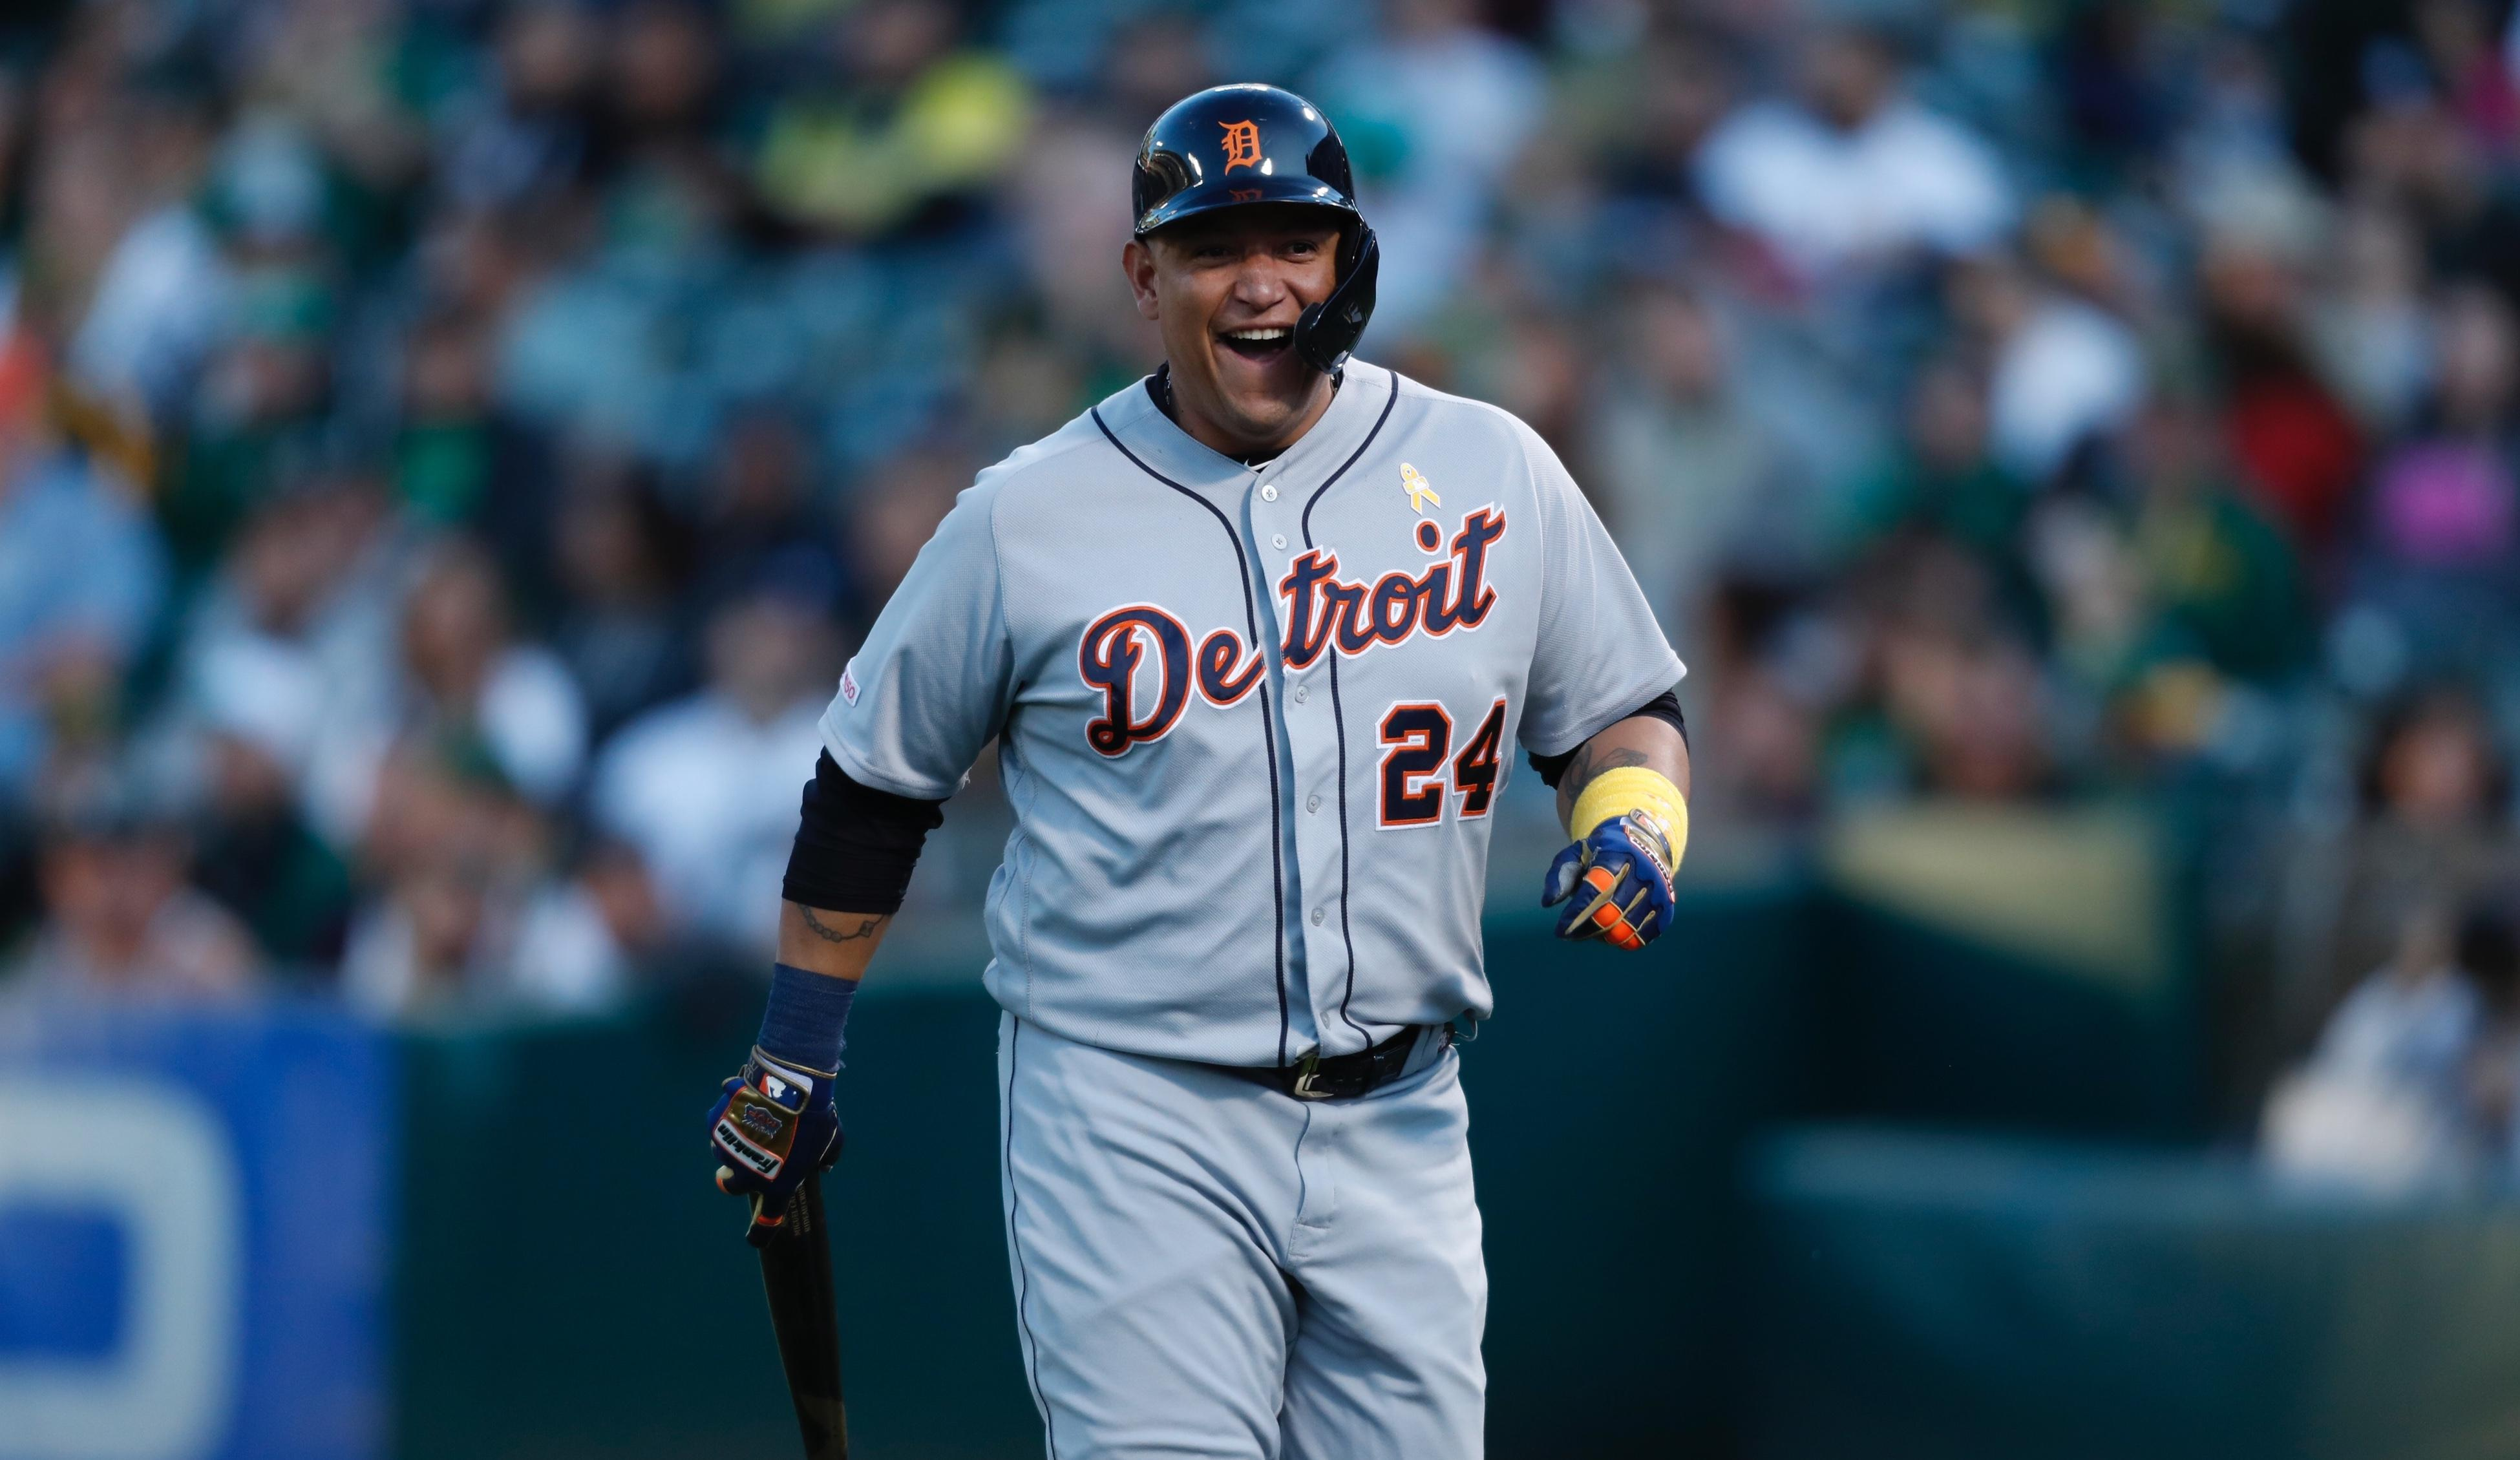 Detroit Tigers Summer 2019 Schedule